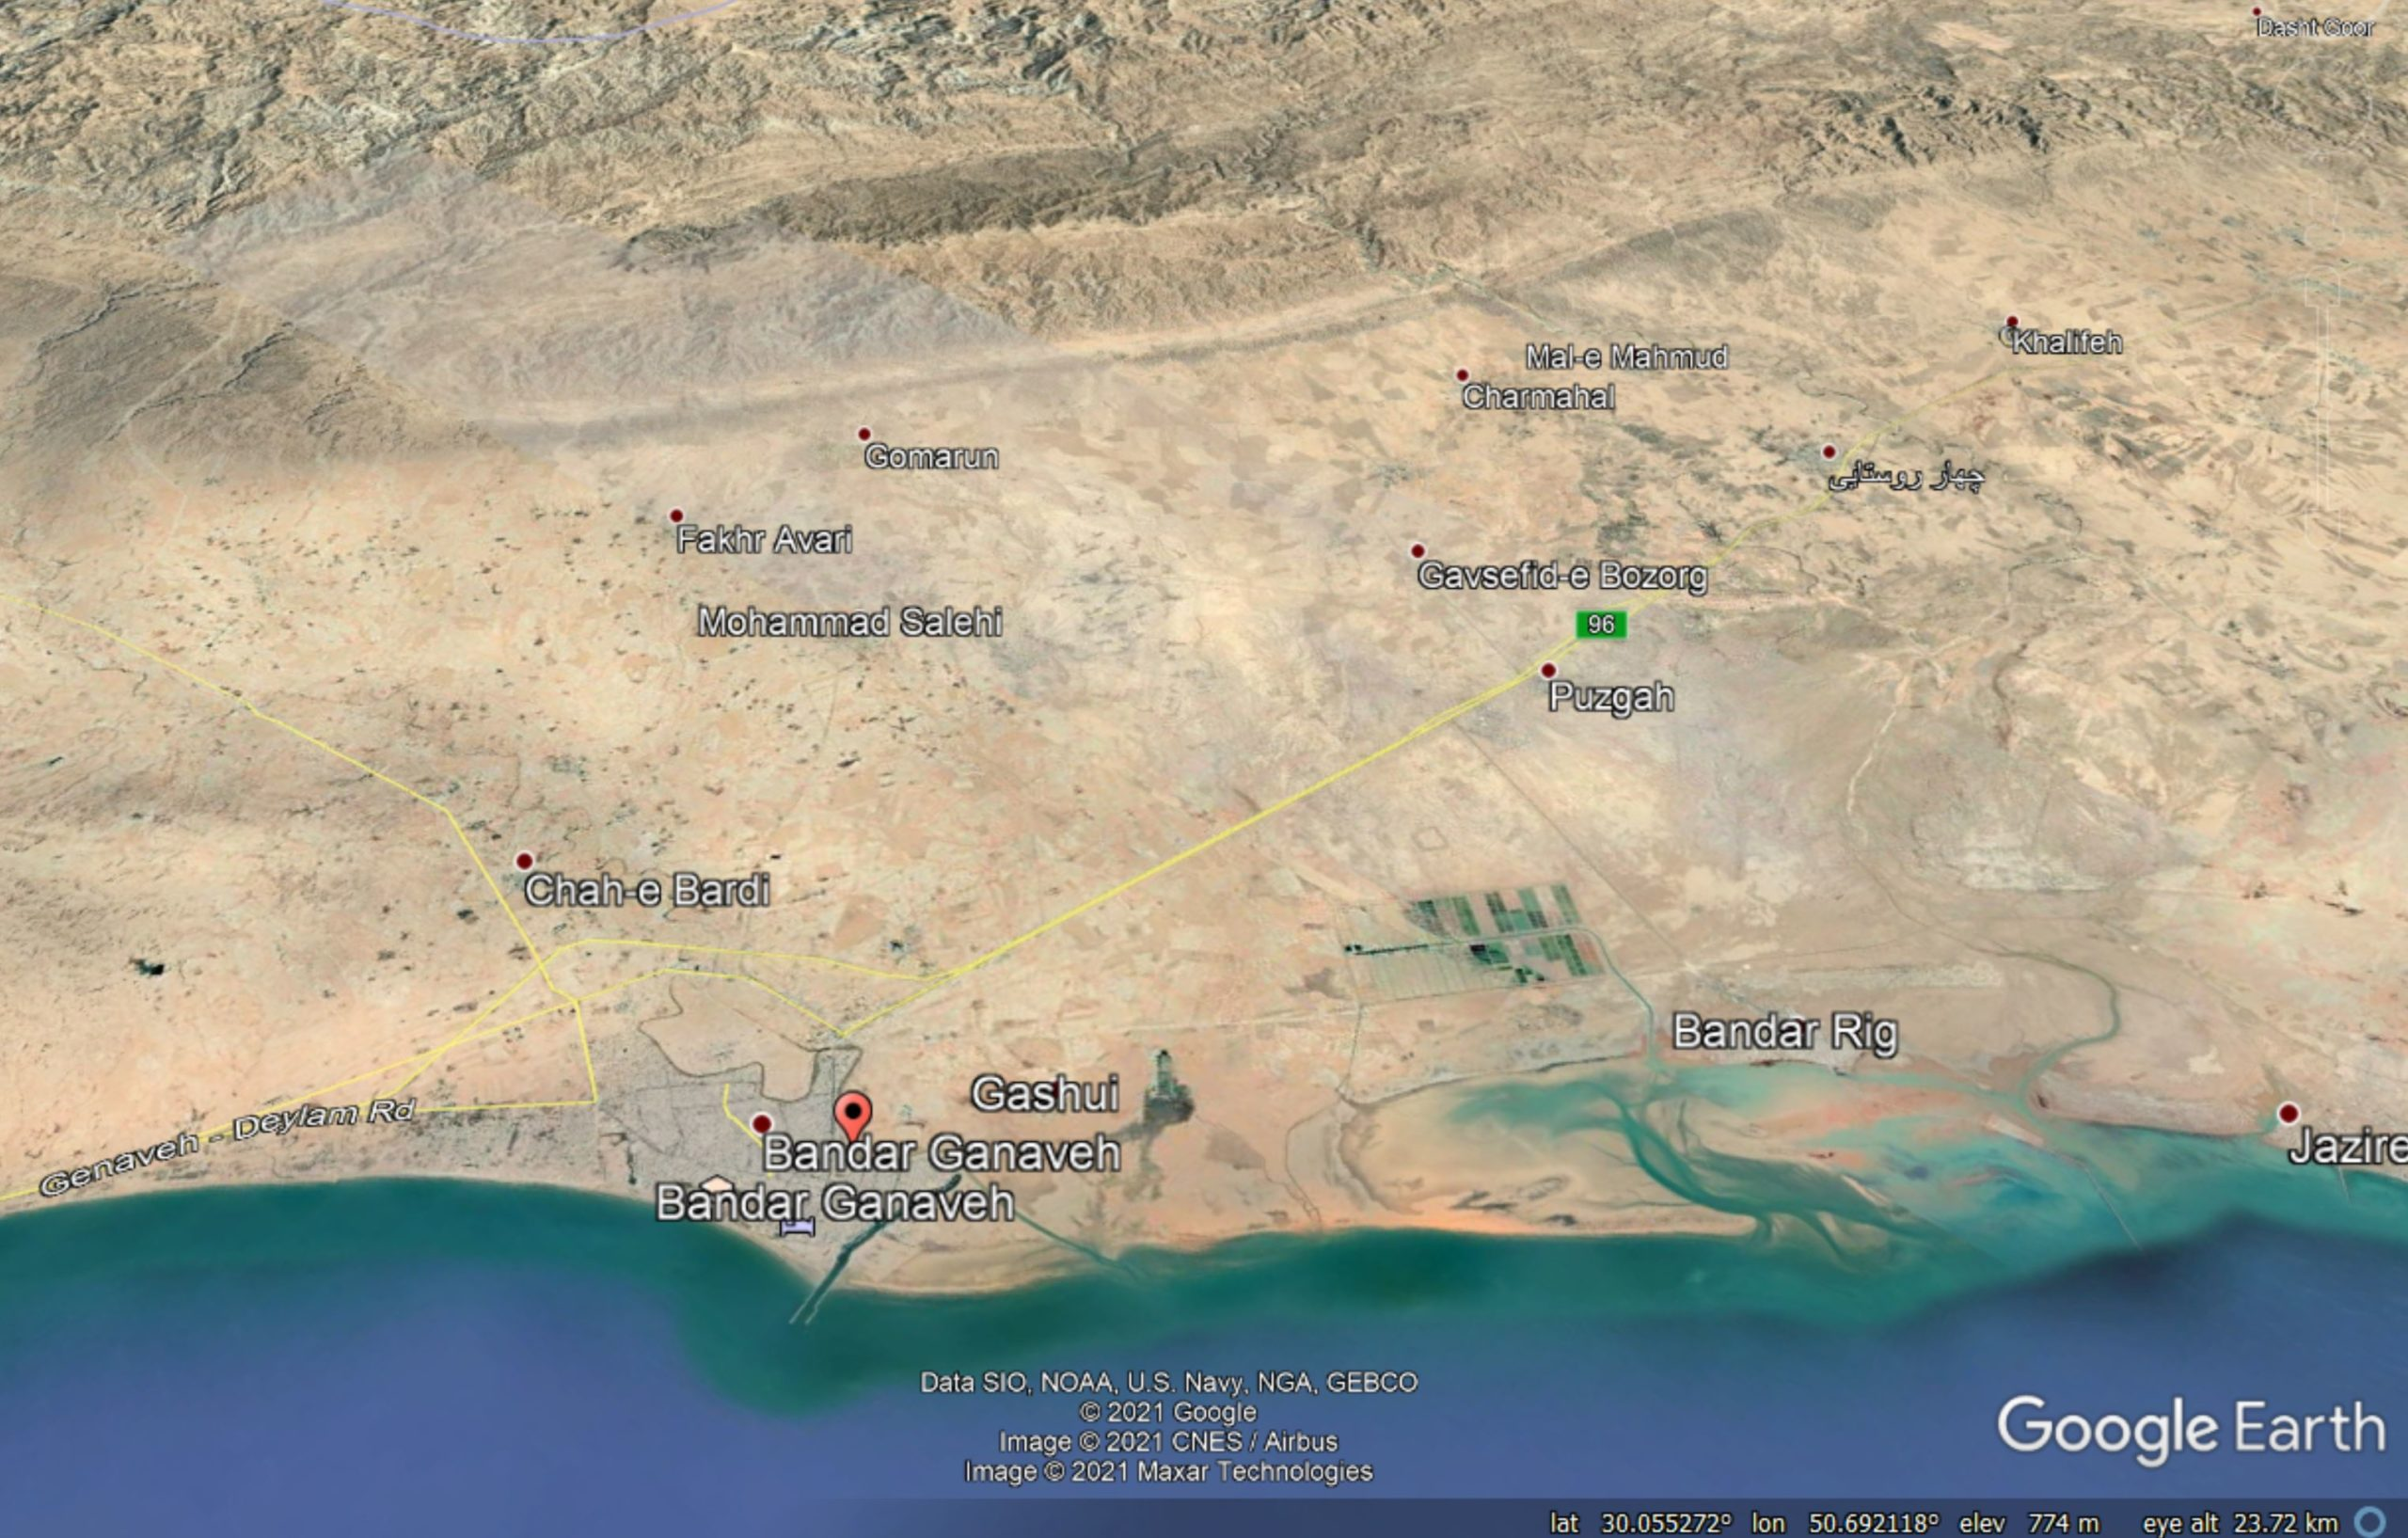 Google Earth image of the topography of the area inland of Bandah Genaveh, site of the 18 April 2021 earthquake